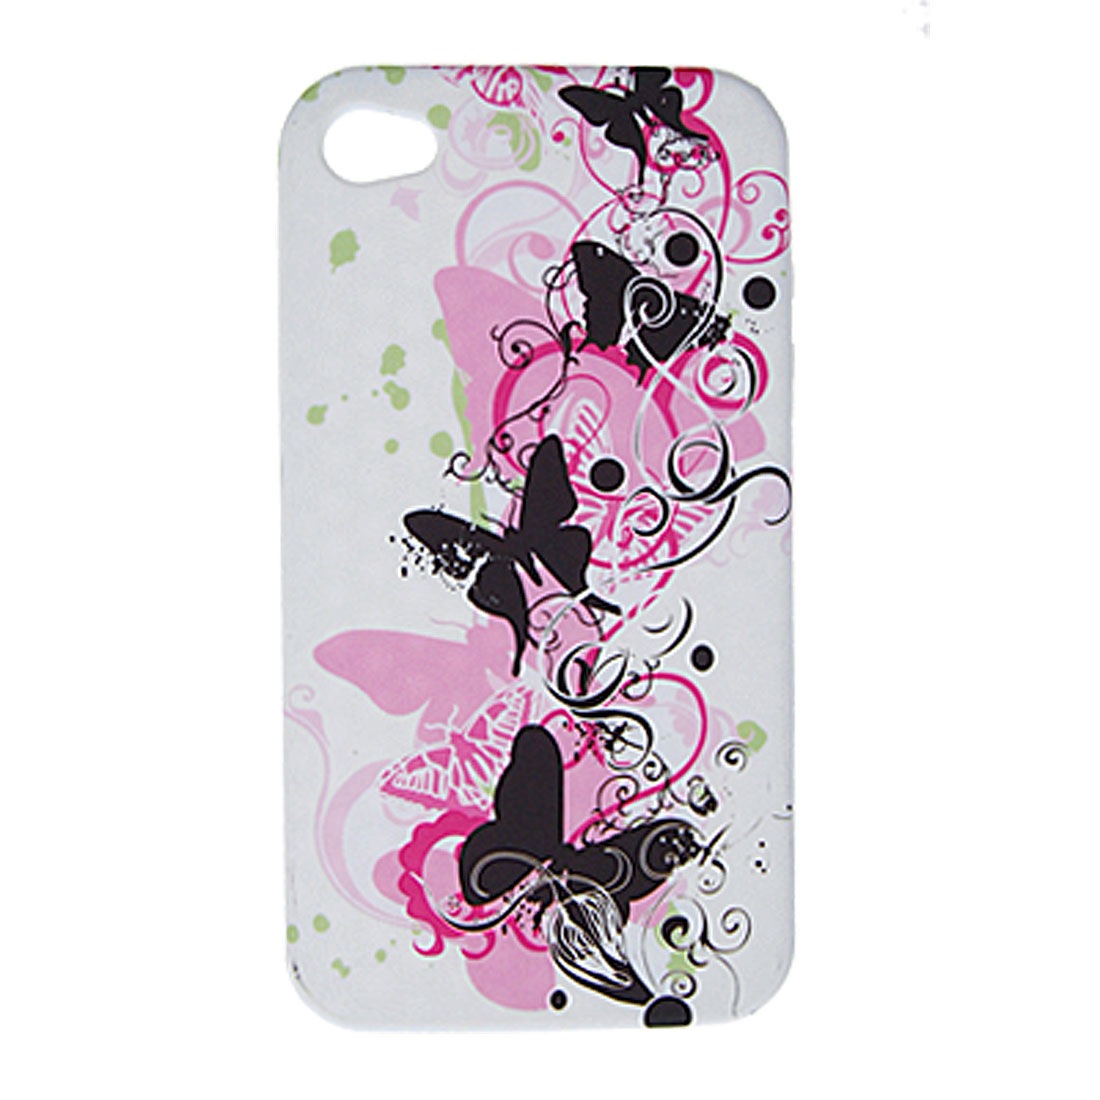 Soft Plastic Case Butterfly White Back Shell for iPhone 4 4G